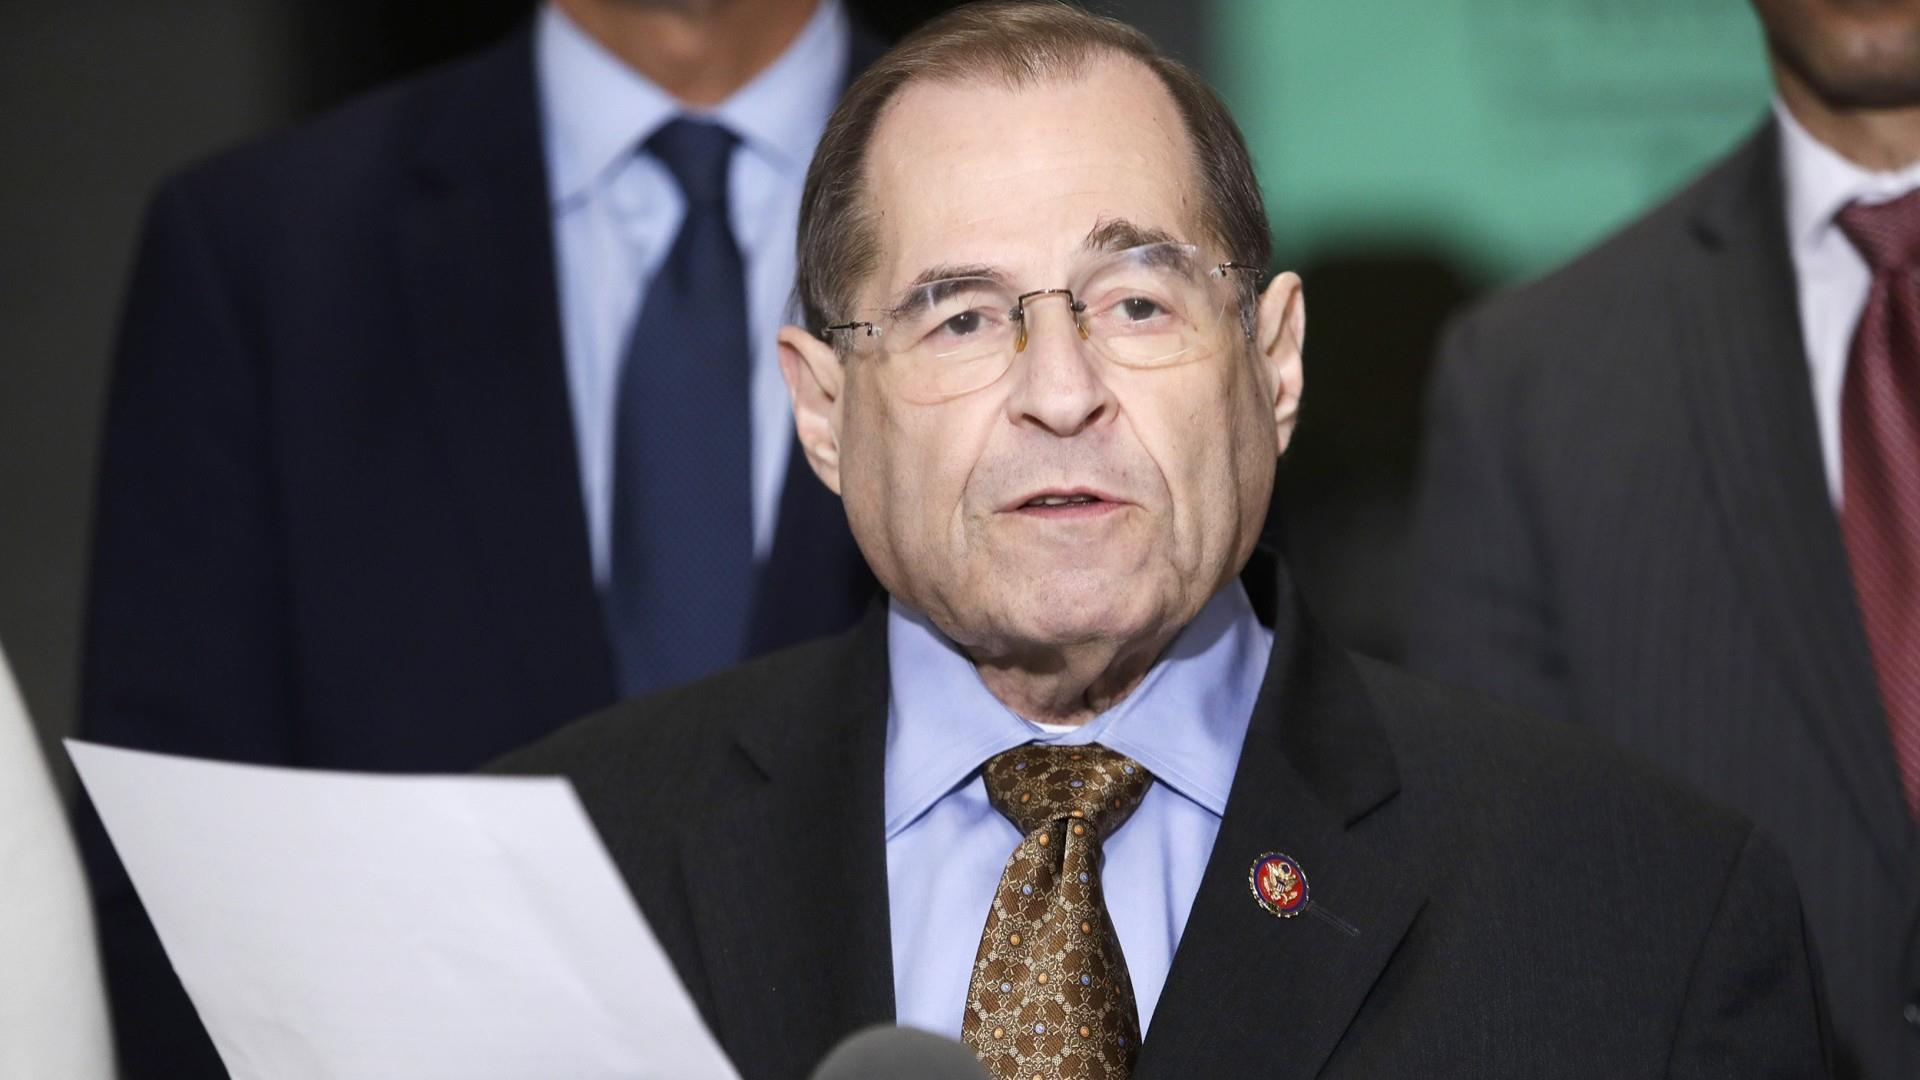 Nadler: 'Responsibility now falls to Congress to hold the president accountable'